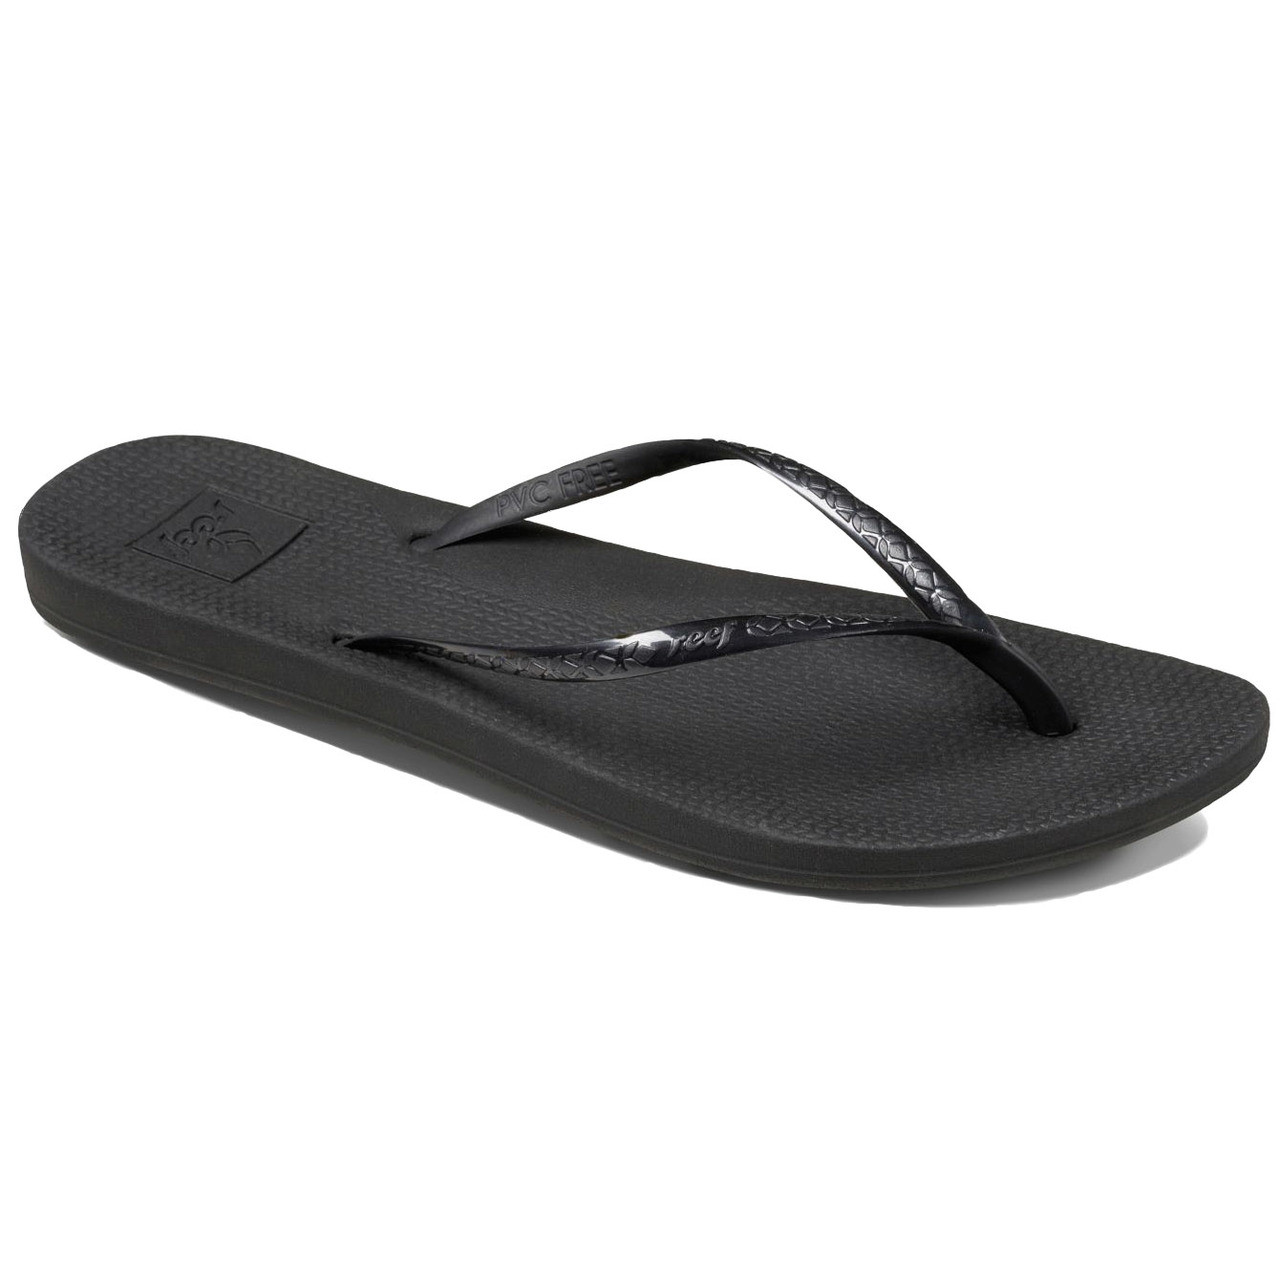 aa165ad0c5f9d Reef Women s Flip Flops - Reef Escape Lux - Black - Surf and Dirt